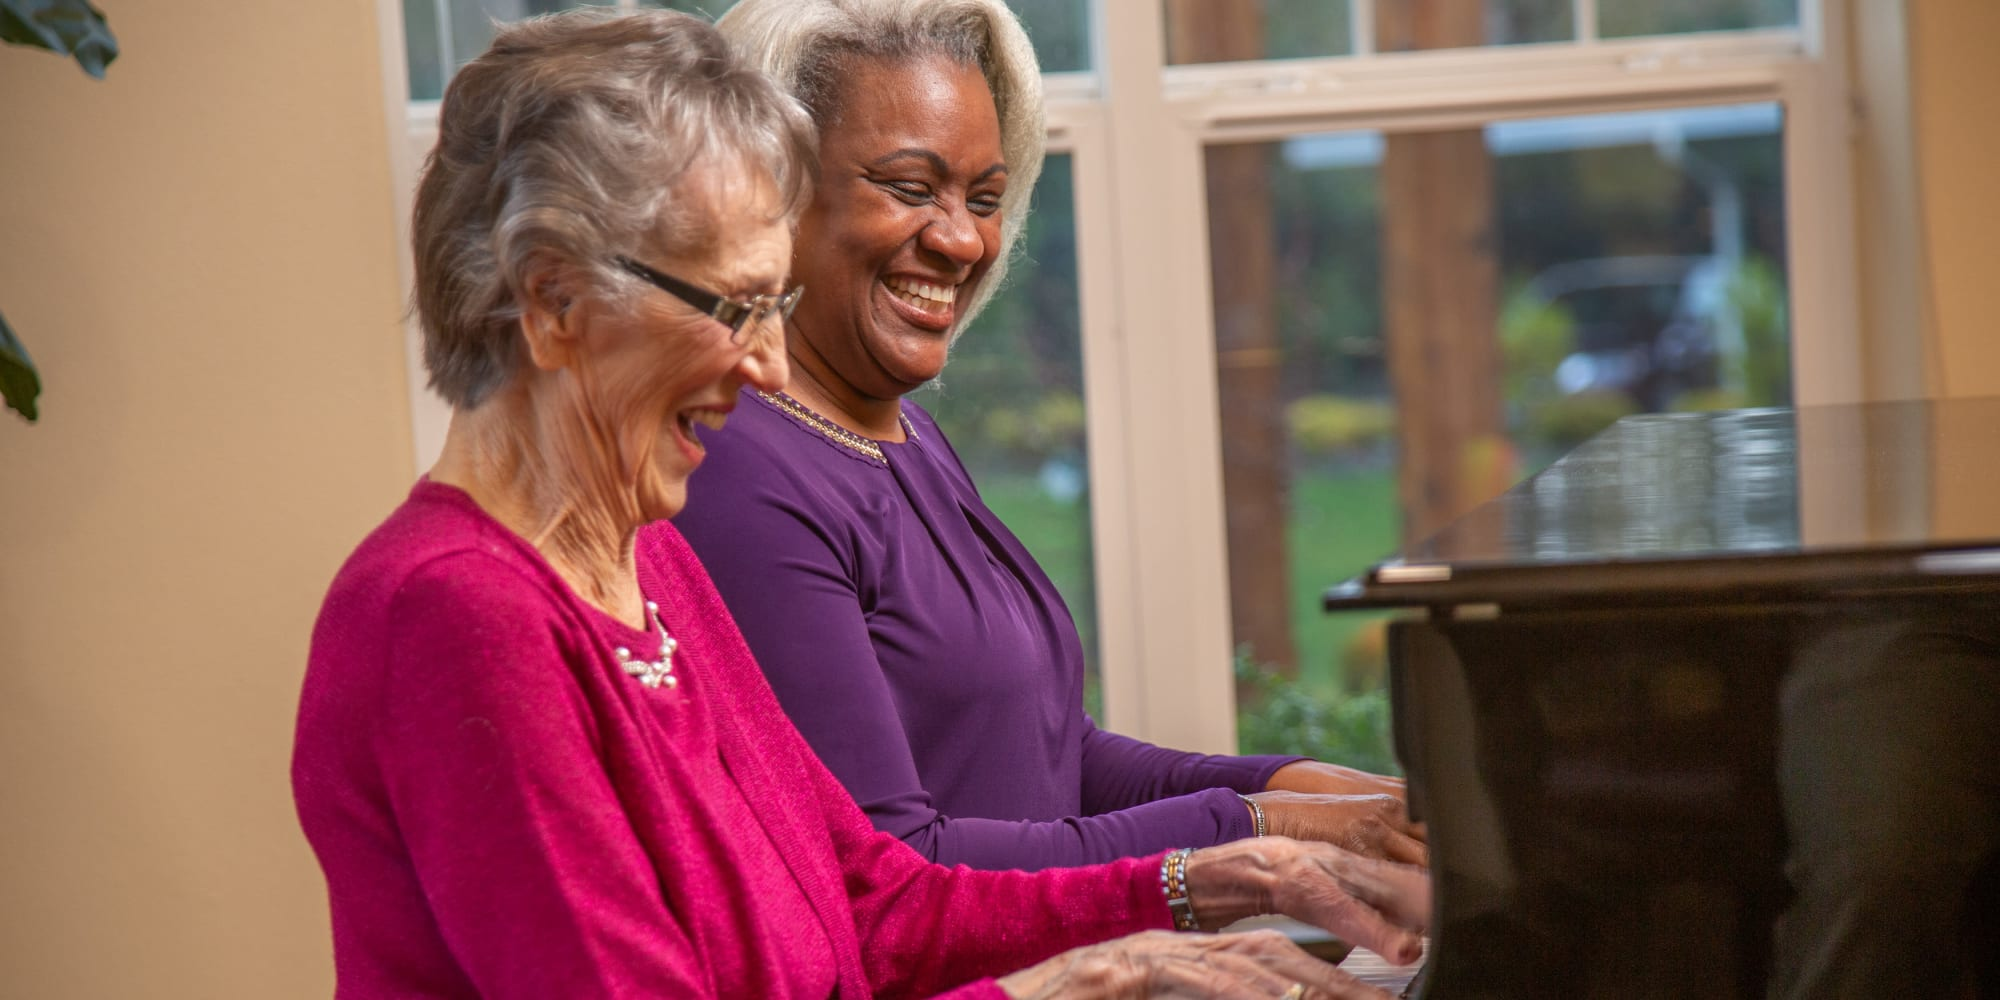 Two residents playing the piano together at Kennedy Meadows Gracious Retirement Living in North Billerica, Massachusetts